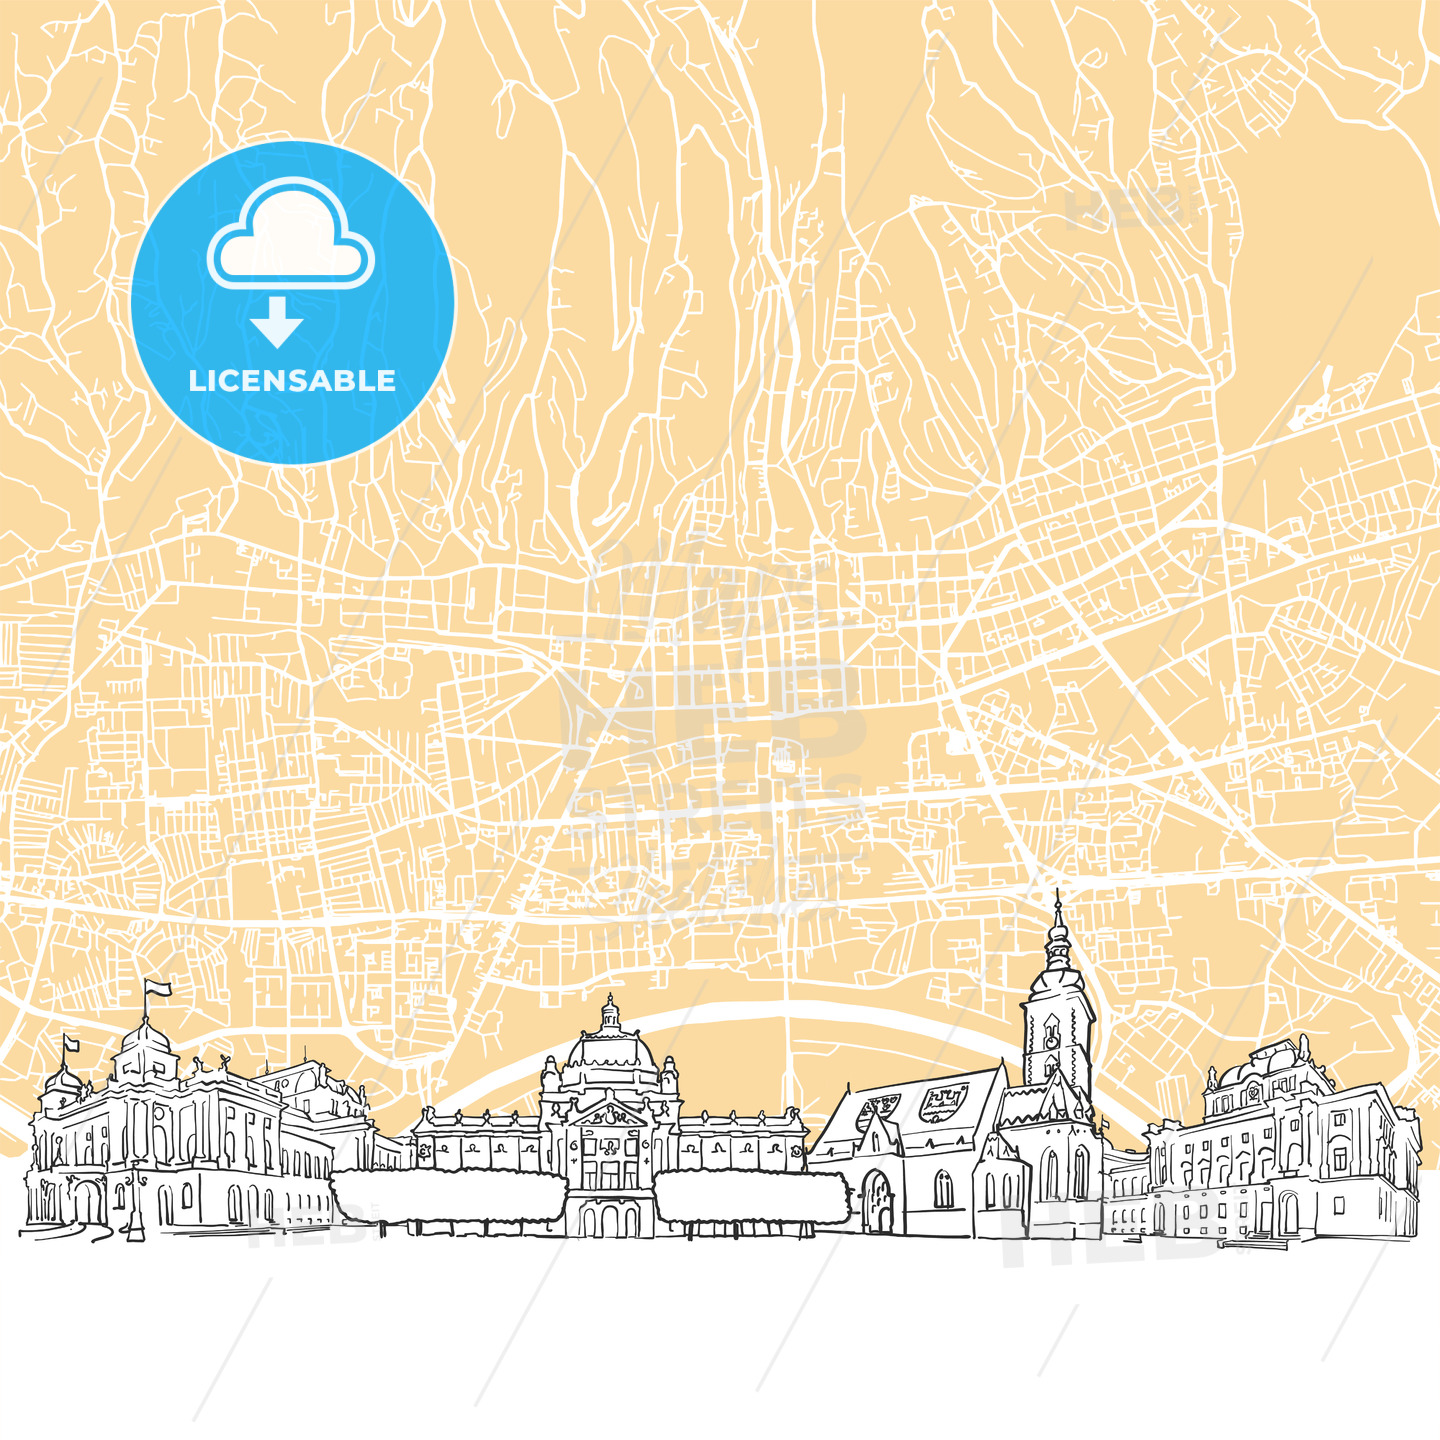 Zagreb Croatia Skyline Map - HEBSTREIT's Sketches